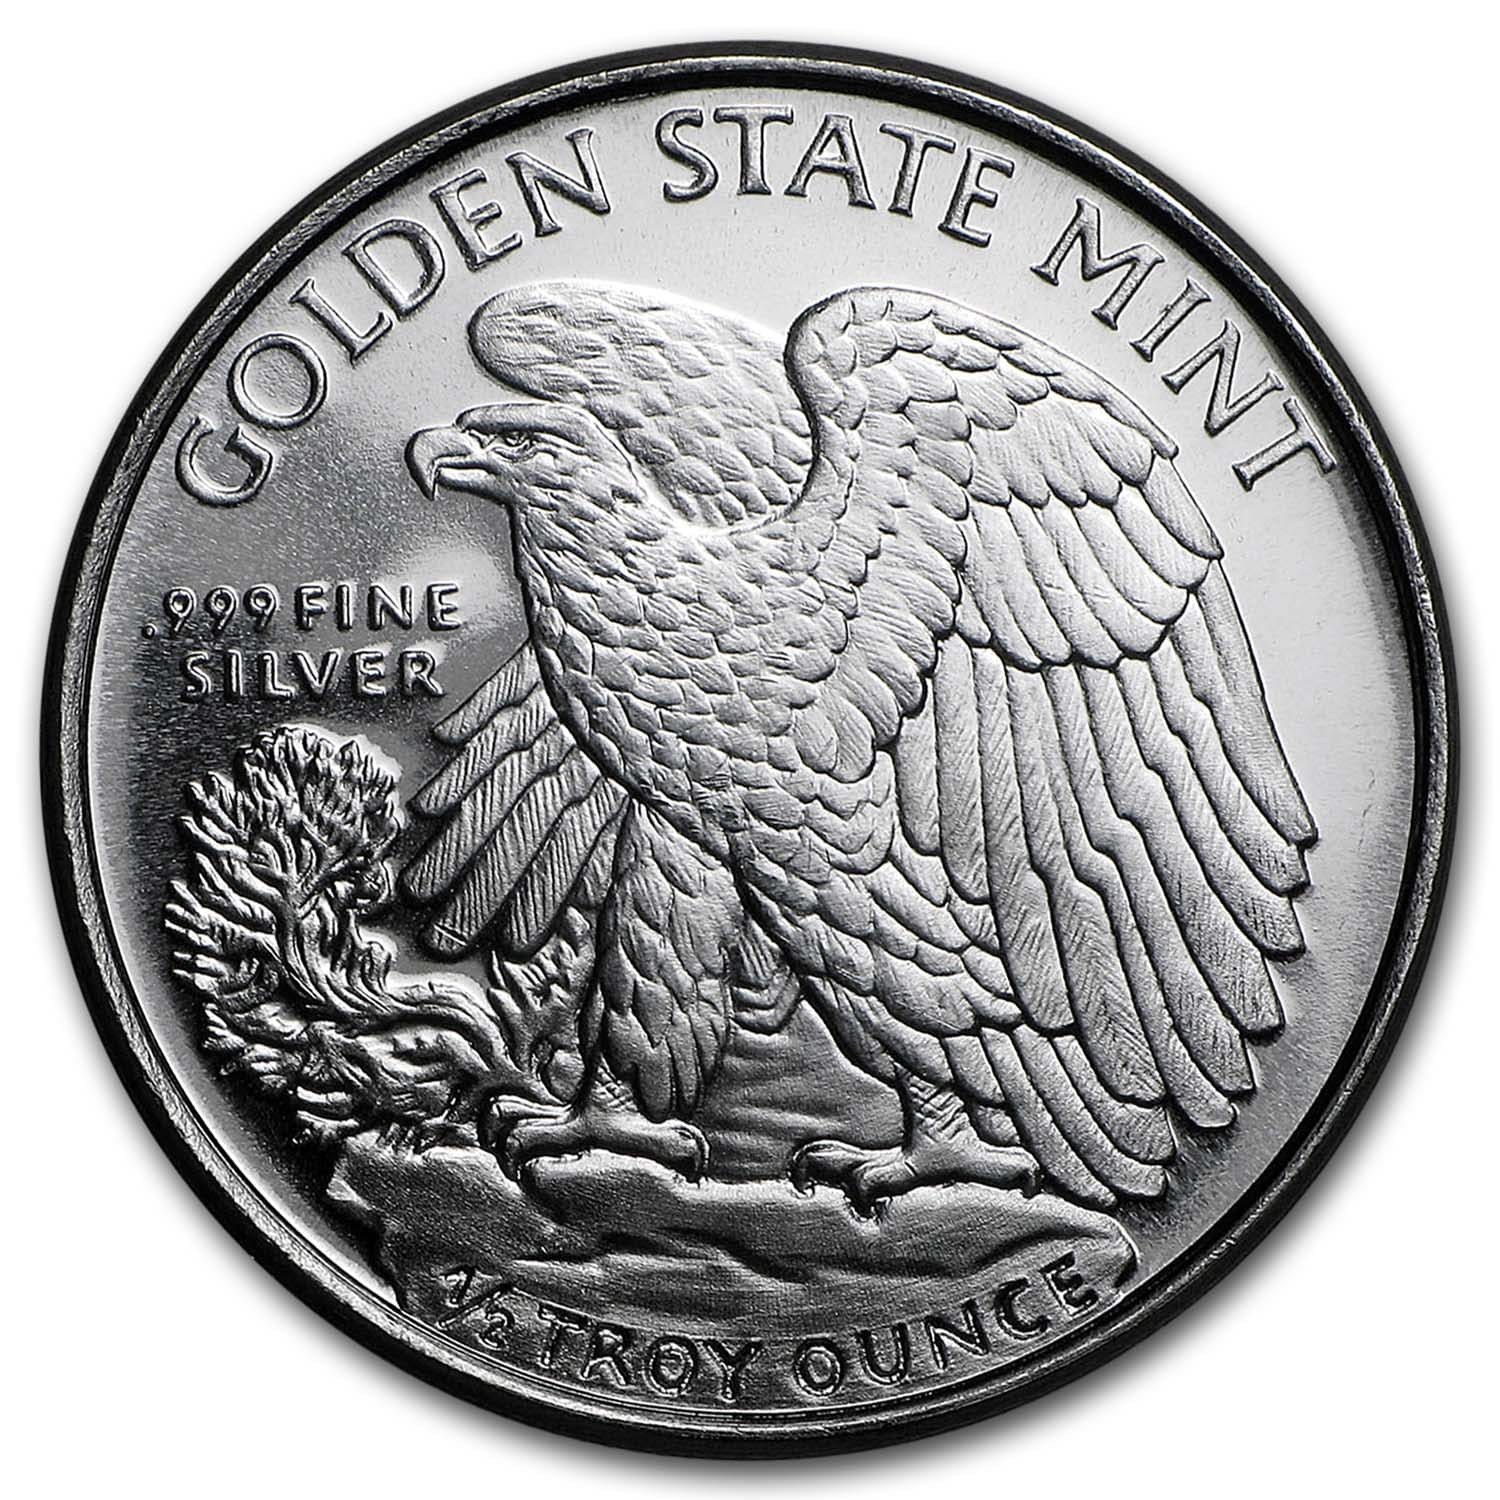 1/2 oz Silver Round - Walking Liberty